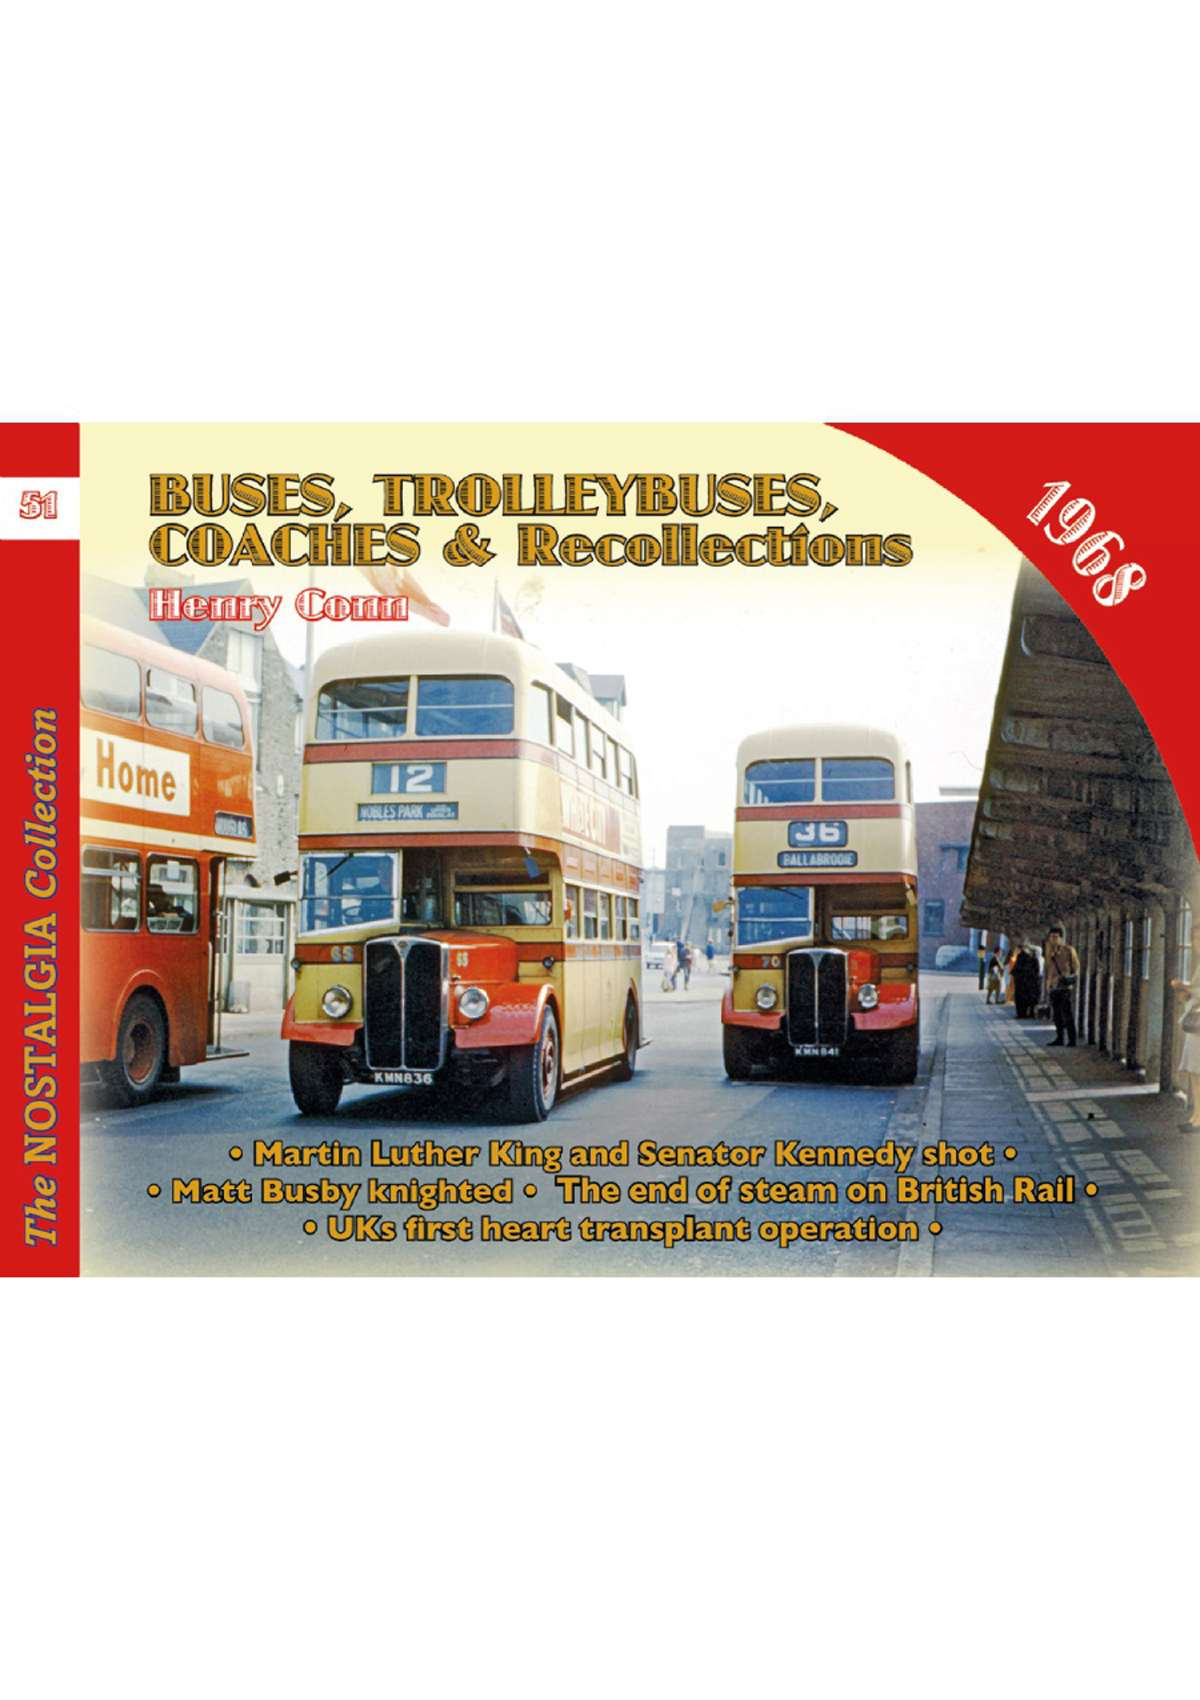 4501 - Vol 51: Buses, Trolleybuses, Coaches & Recollections 1968